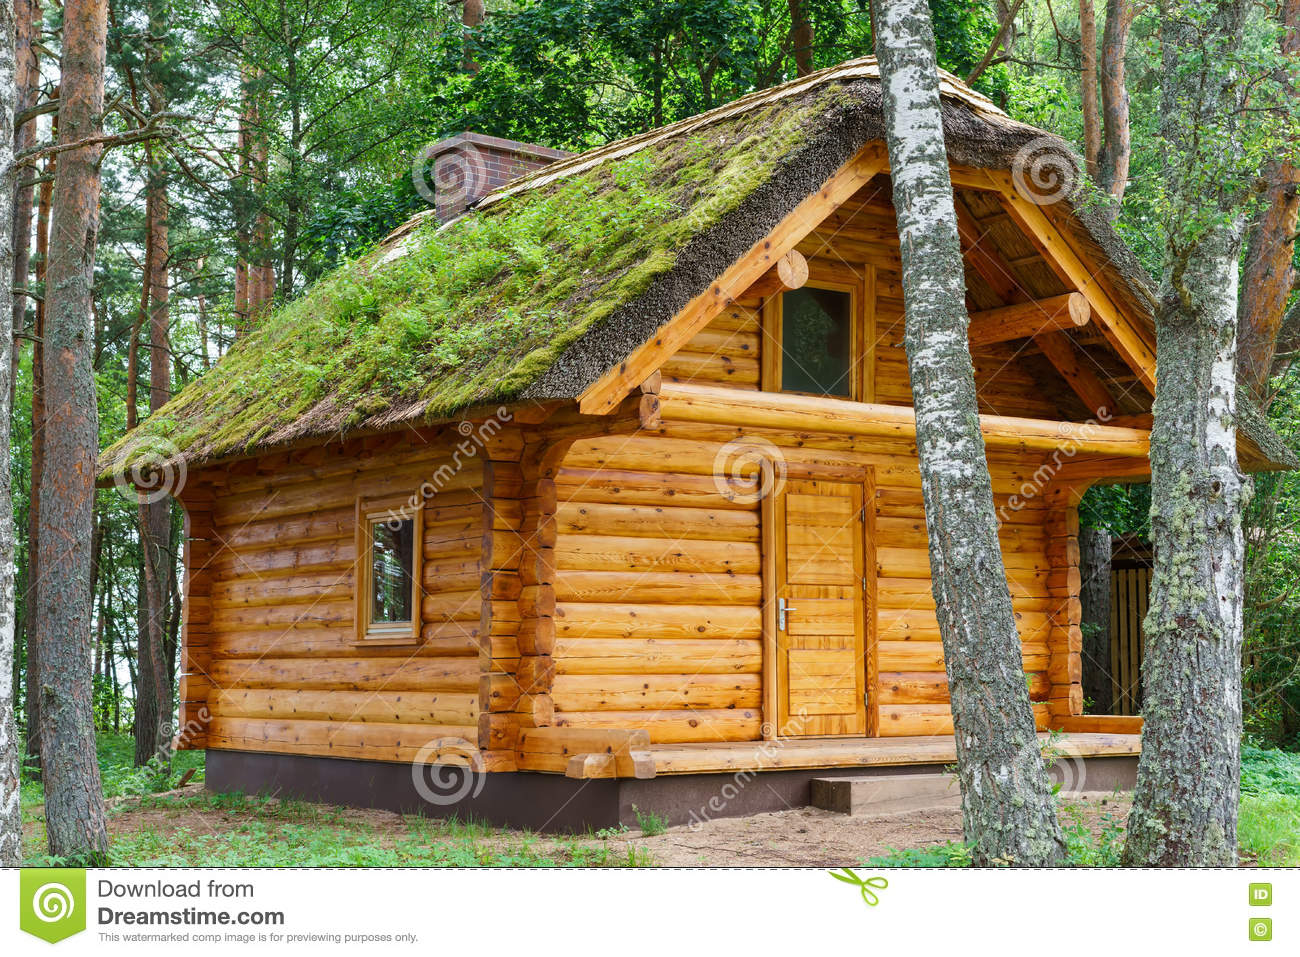 Wooden log cabine shelter under thatched roof in pine forest